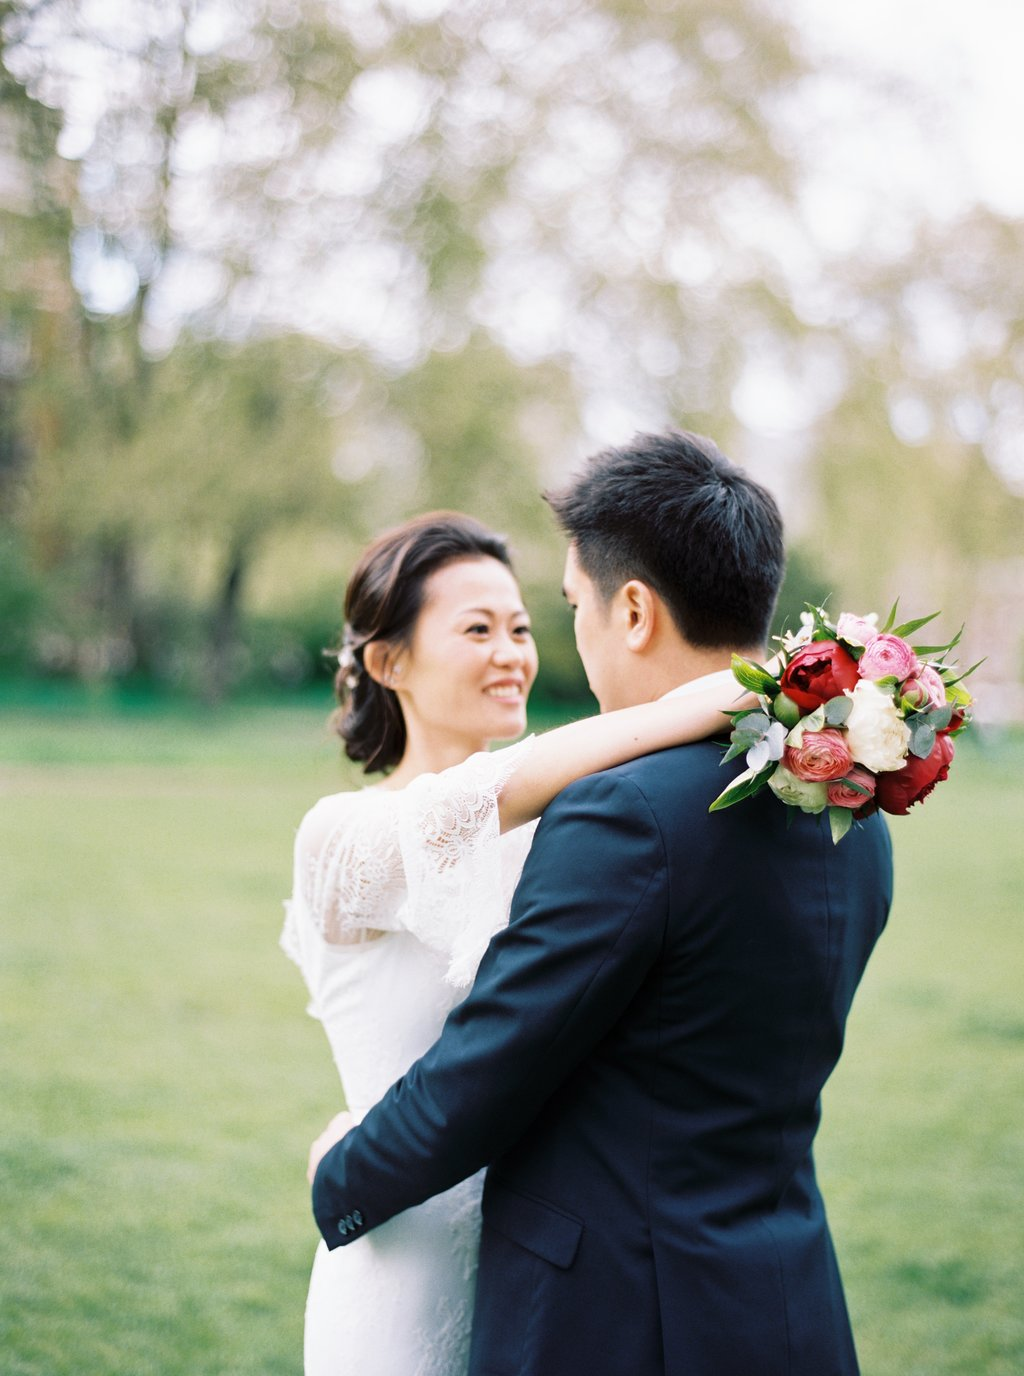 Oversea per wedding photography London Westminster House of Parliment couple shoot